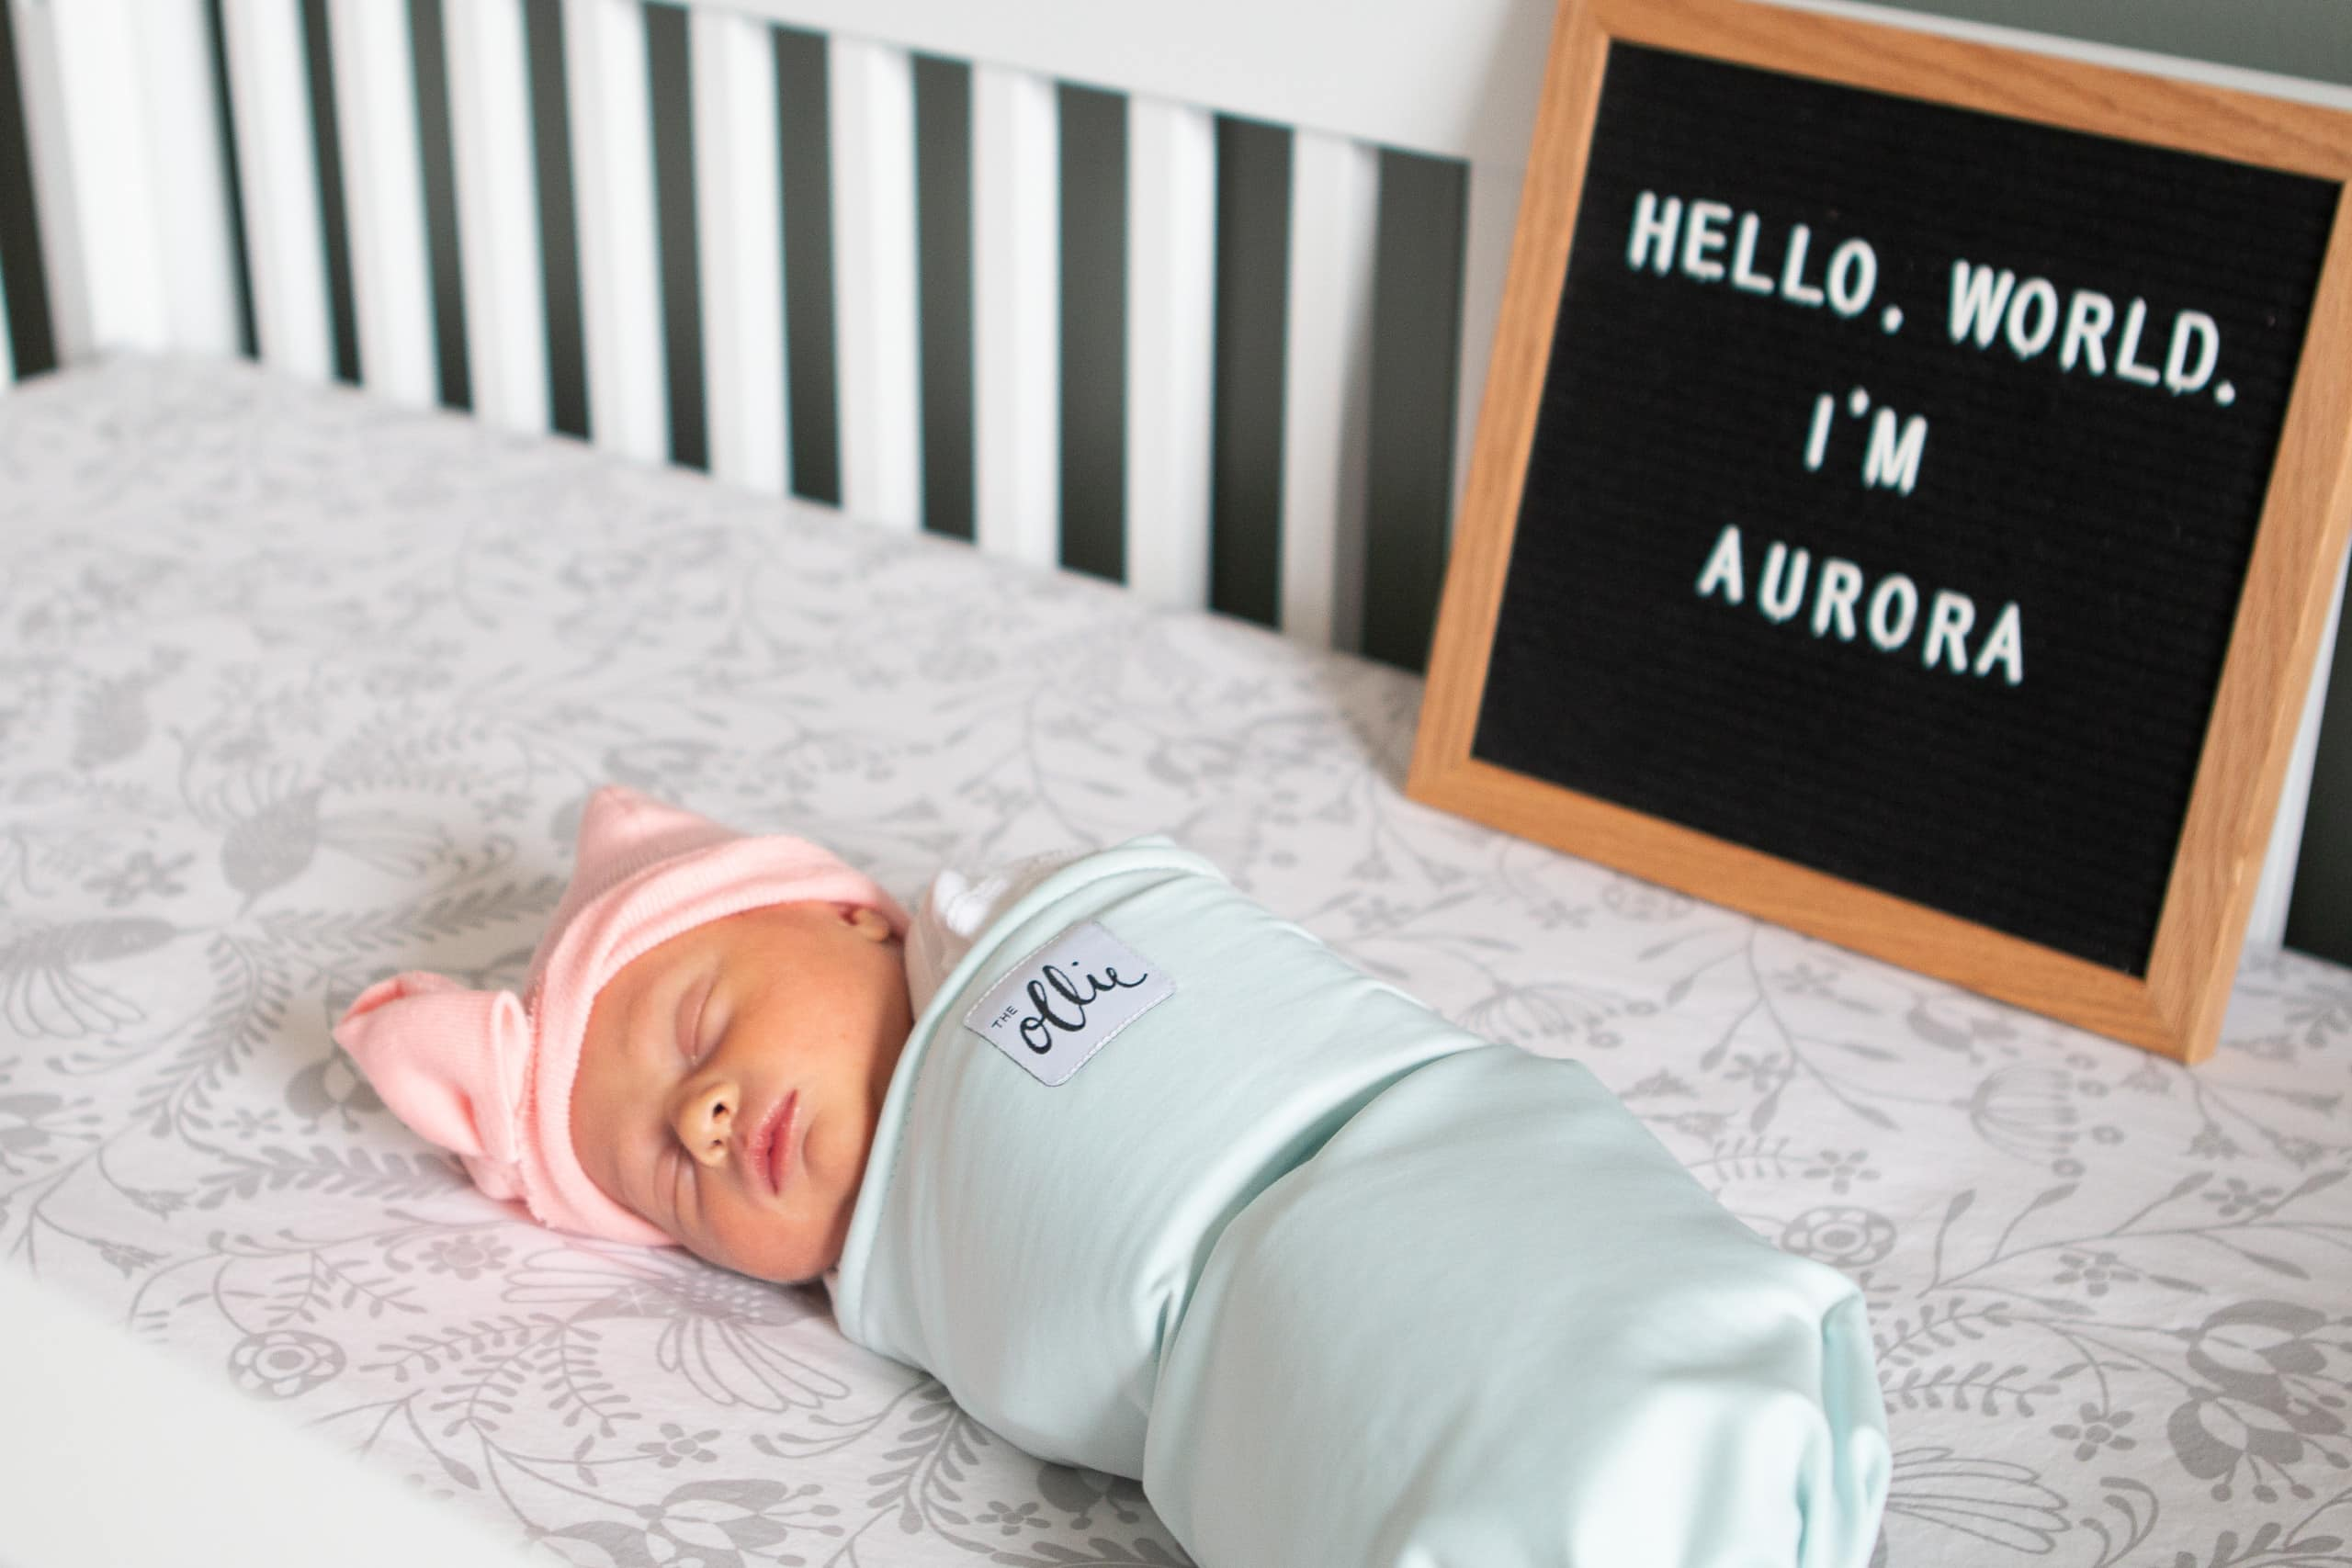 Hello, world I'm Aurora, 2020 recap